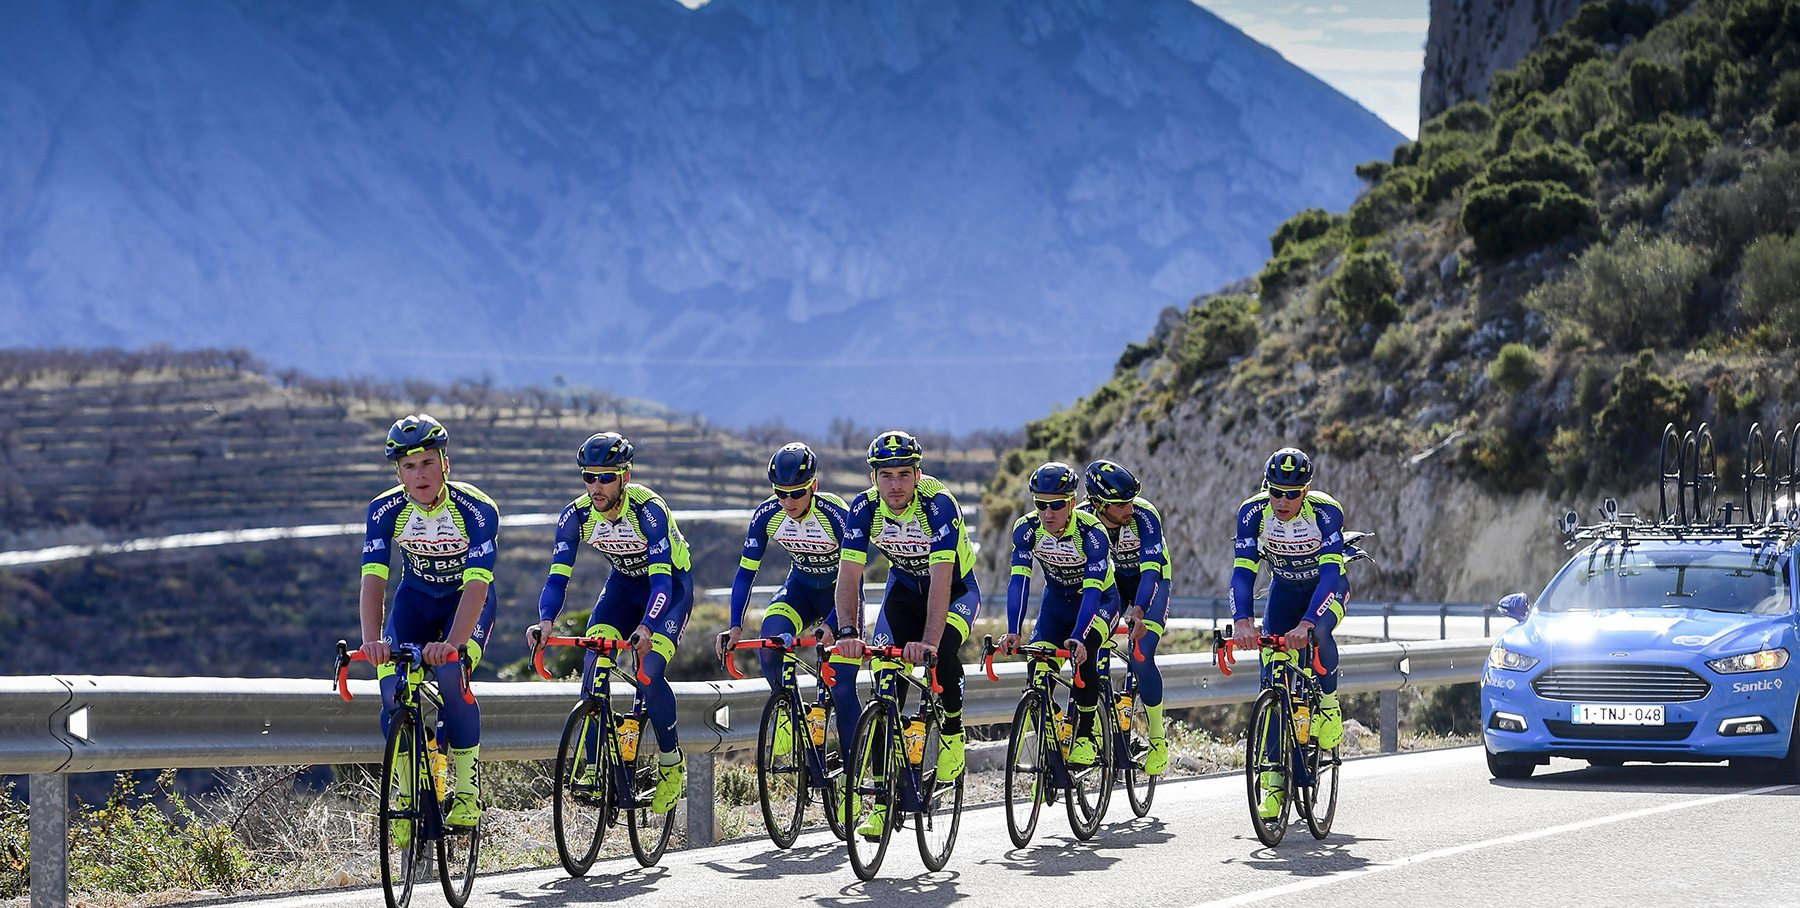 PerfilWanty Groupe Gobert